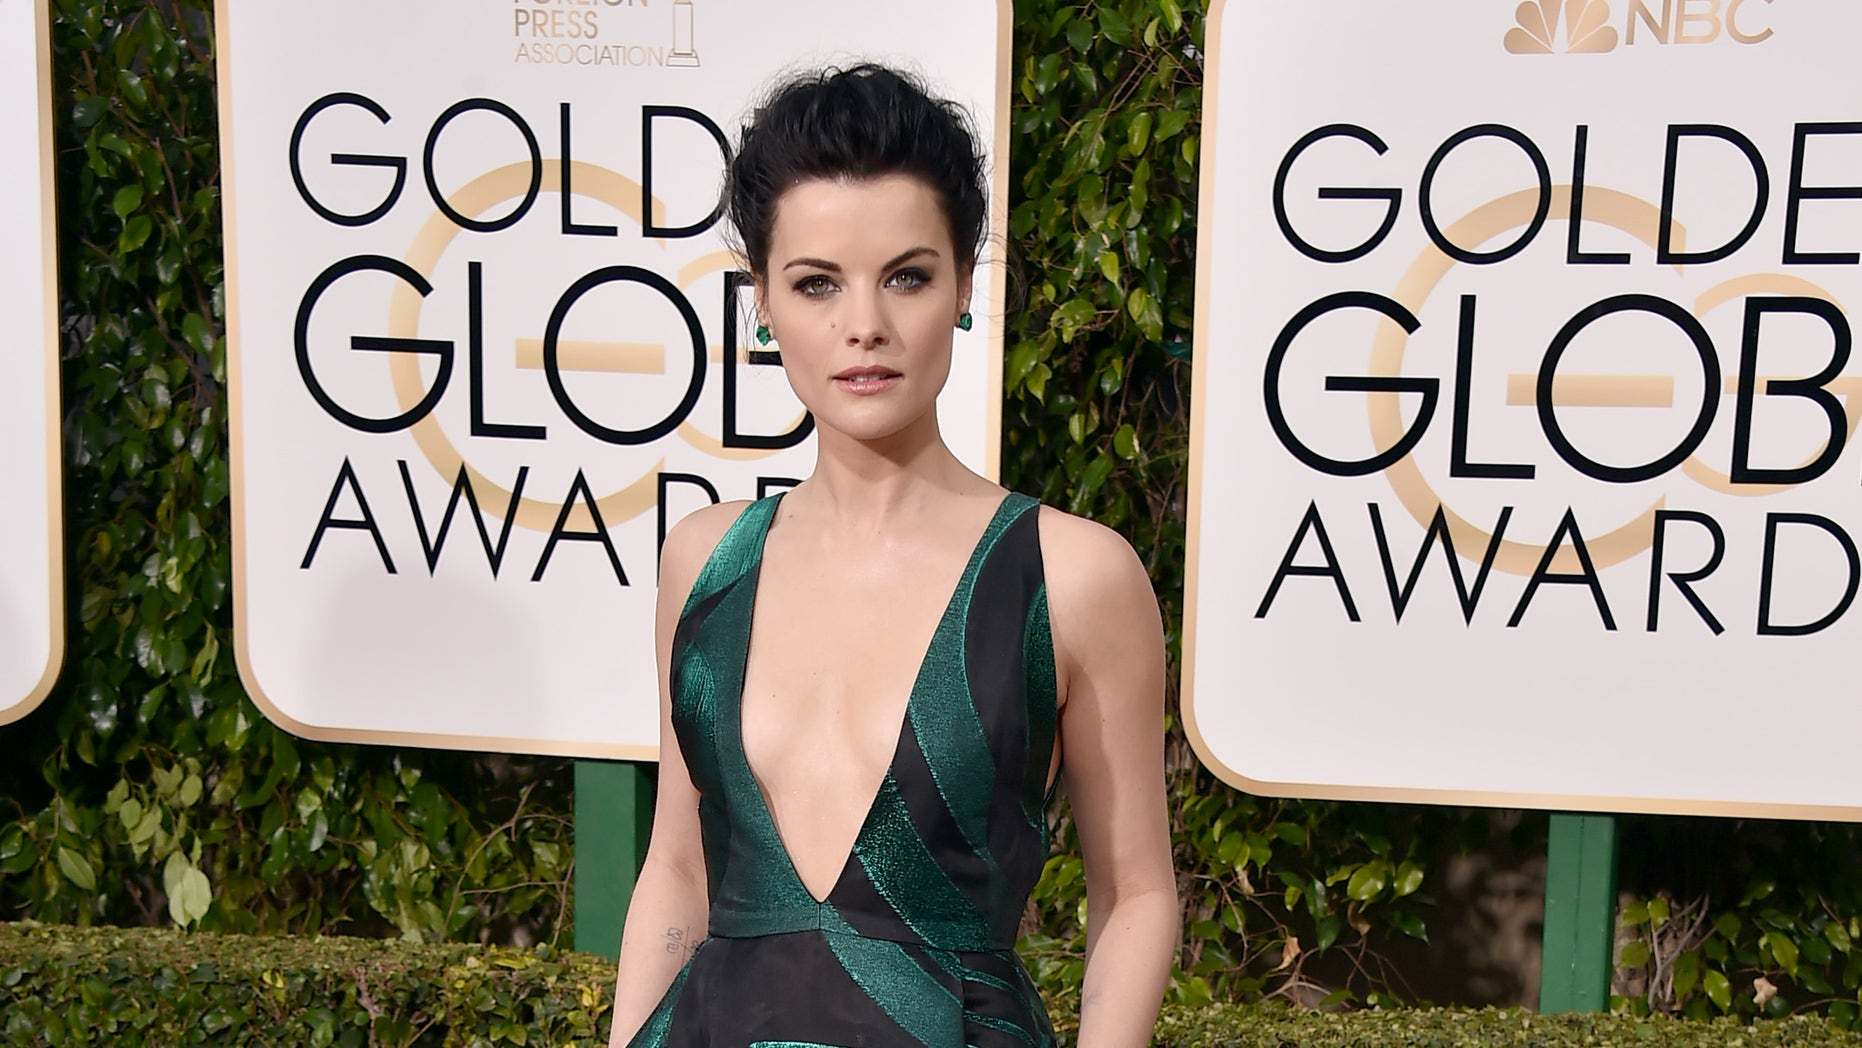 Jaimie Alexander arrives at the 73rd annual Golden Globe Awards on Sunday, Jan. 10, 2016, at the Beverly Hilton Hotel in Beverly Hills, Calif. (Photo by Jordan Strauss/Invision/AP)